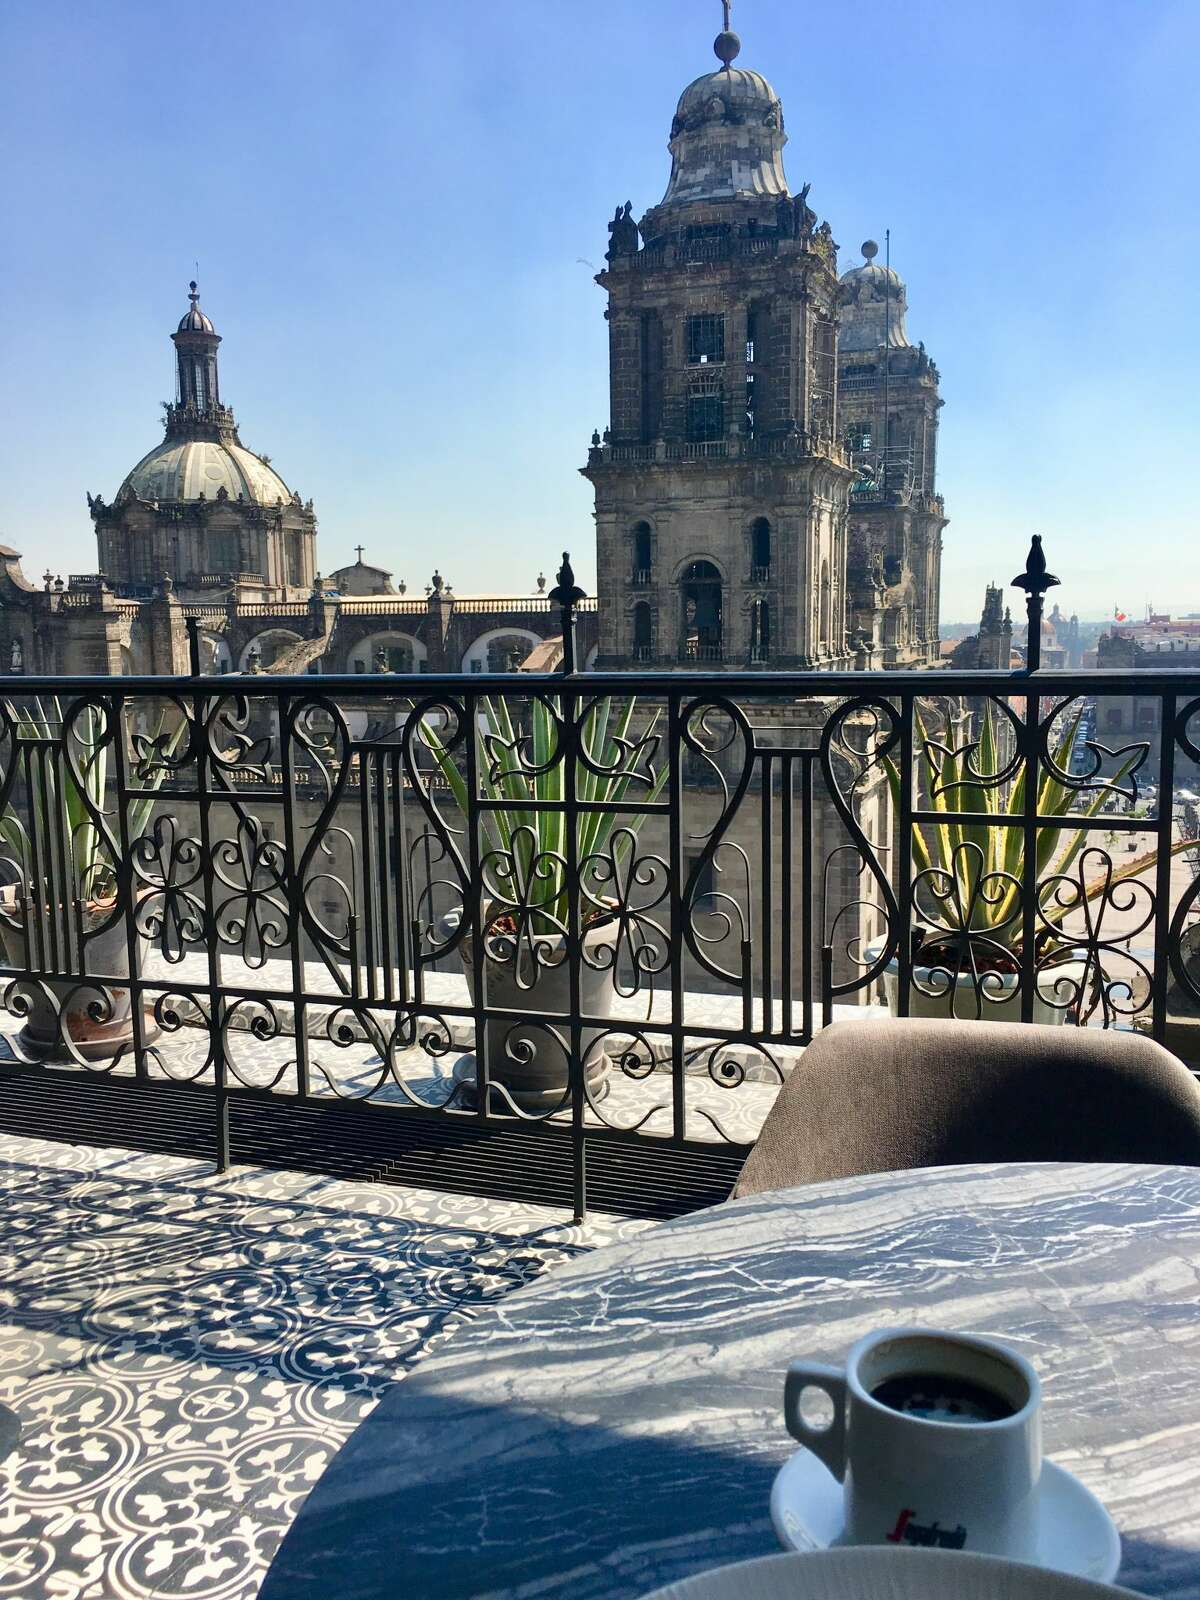 Brunch is better with a view, which you'll find at El Balcon del Zocalo.